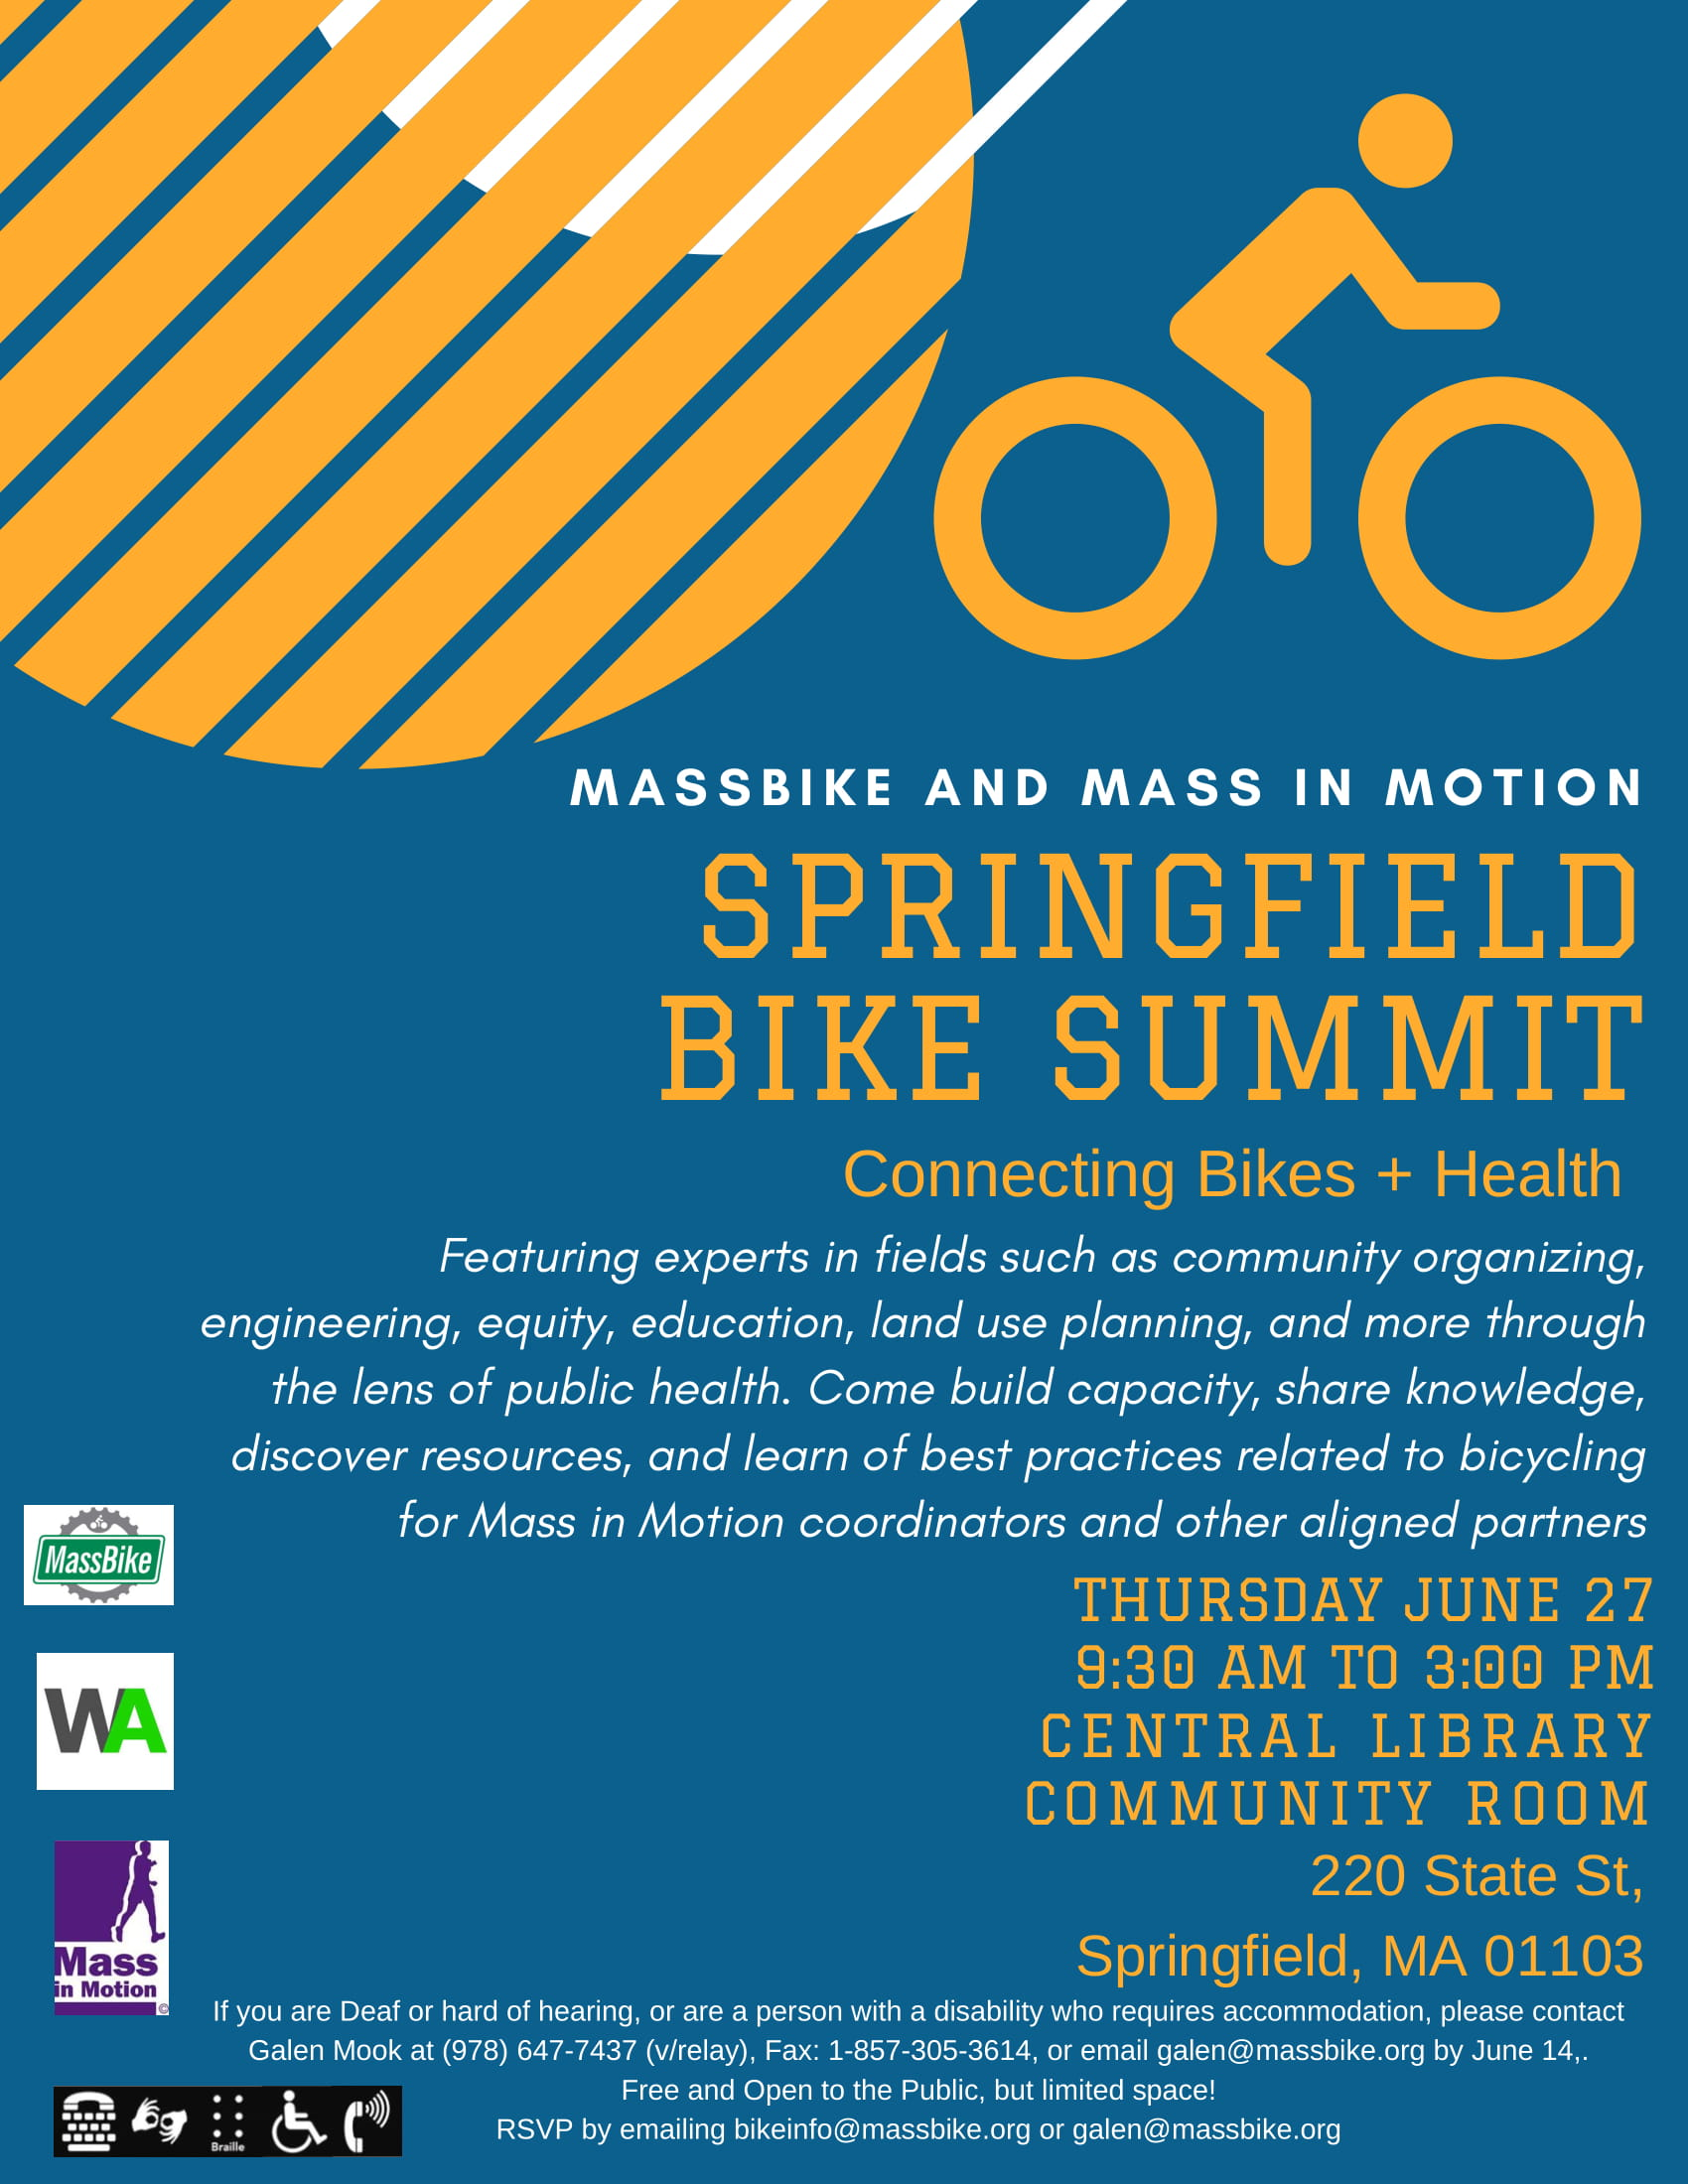 Springfield_Bike_Summit_Flyer-1.jpg